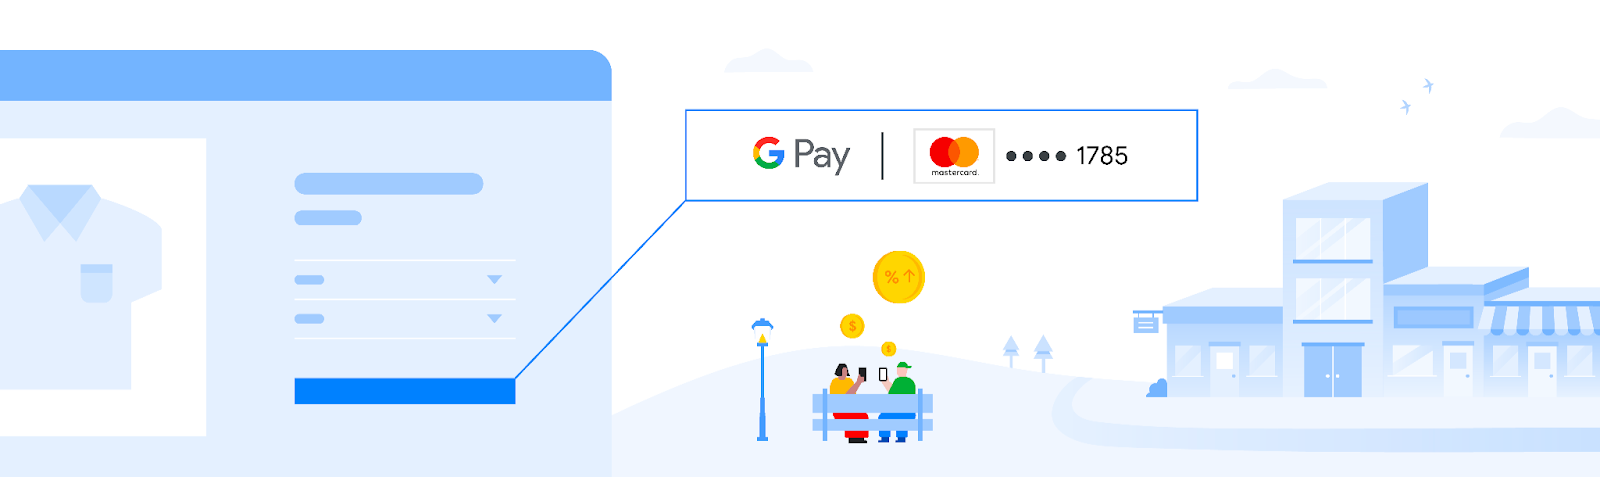 Google Pay header